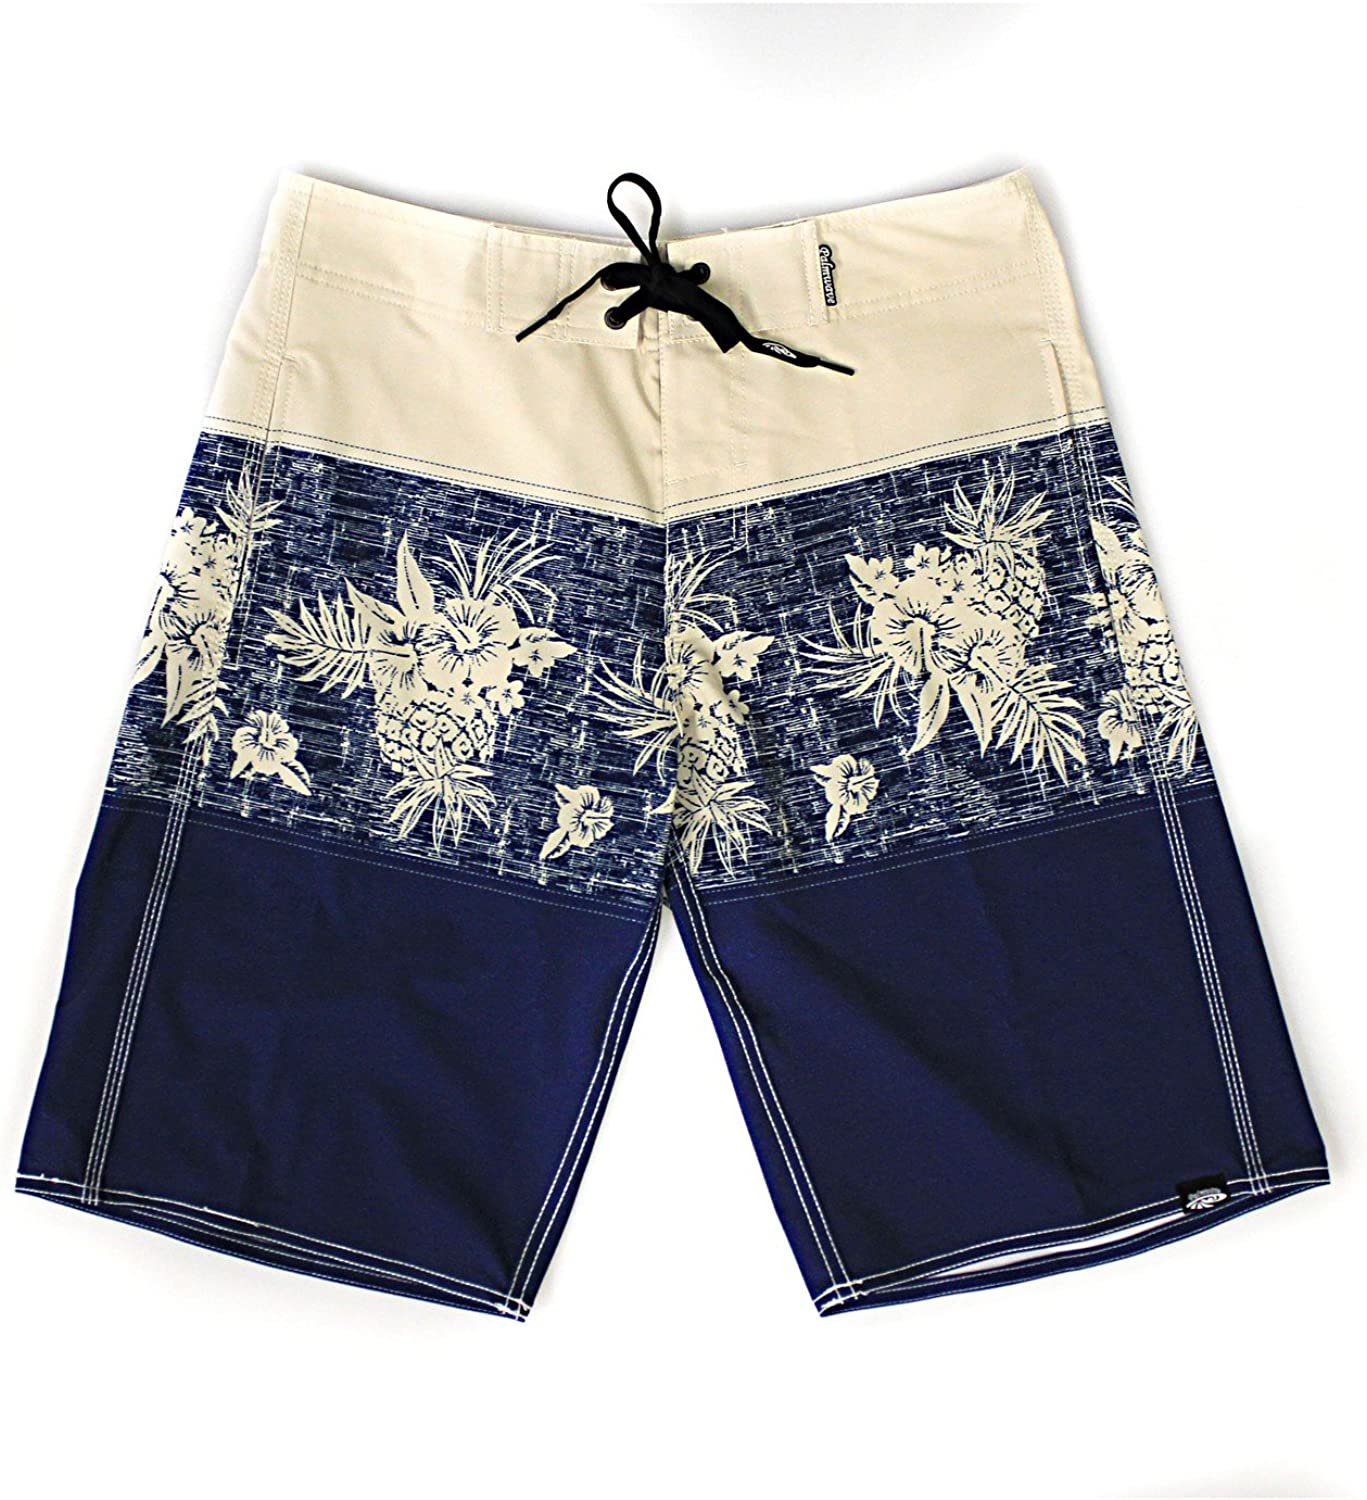 Men's Beach Wear Board Shorts with Pocket in Rustic Vintage Floral in Blue Navy Red